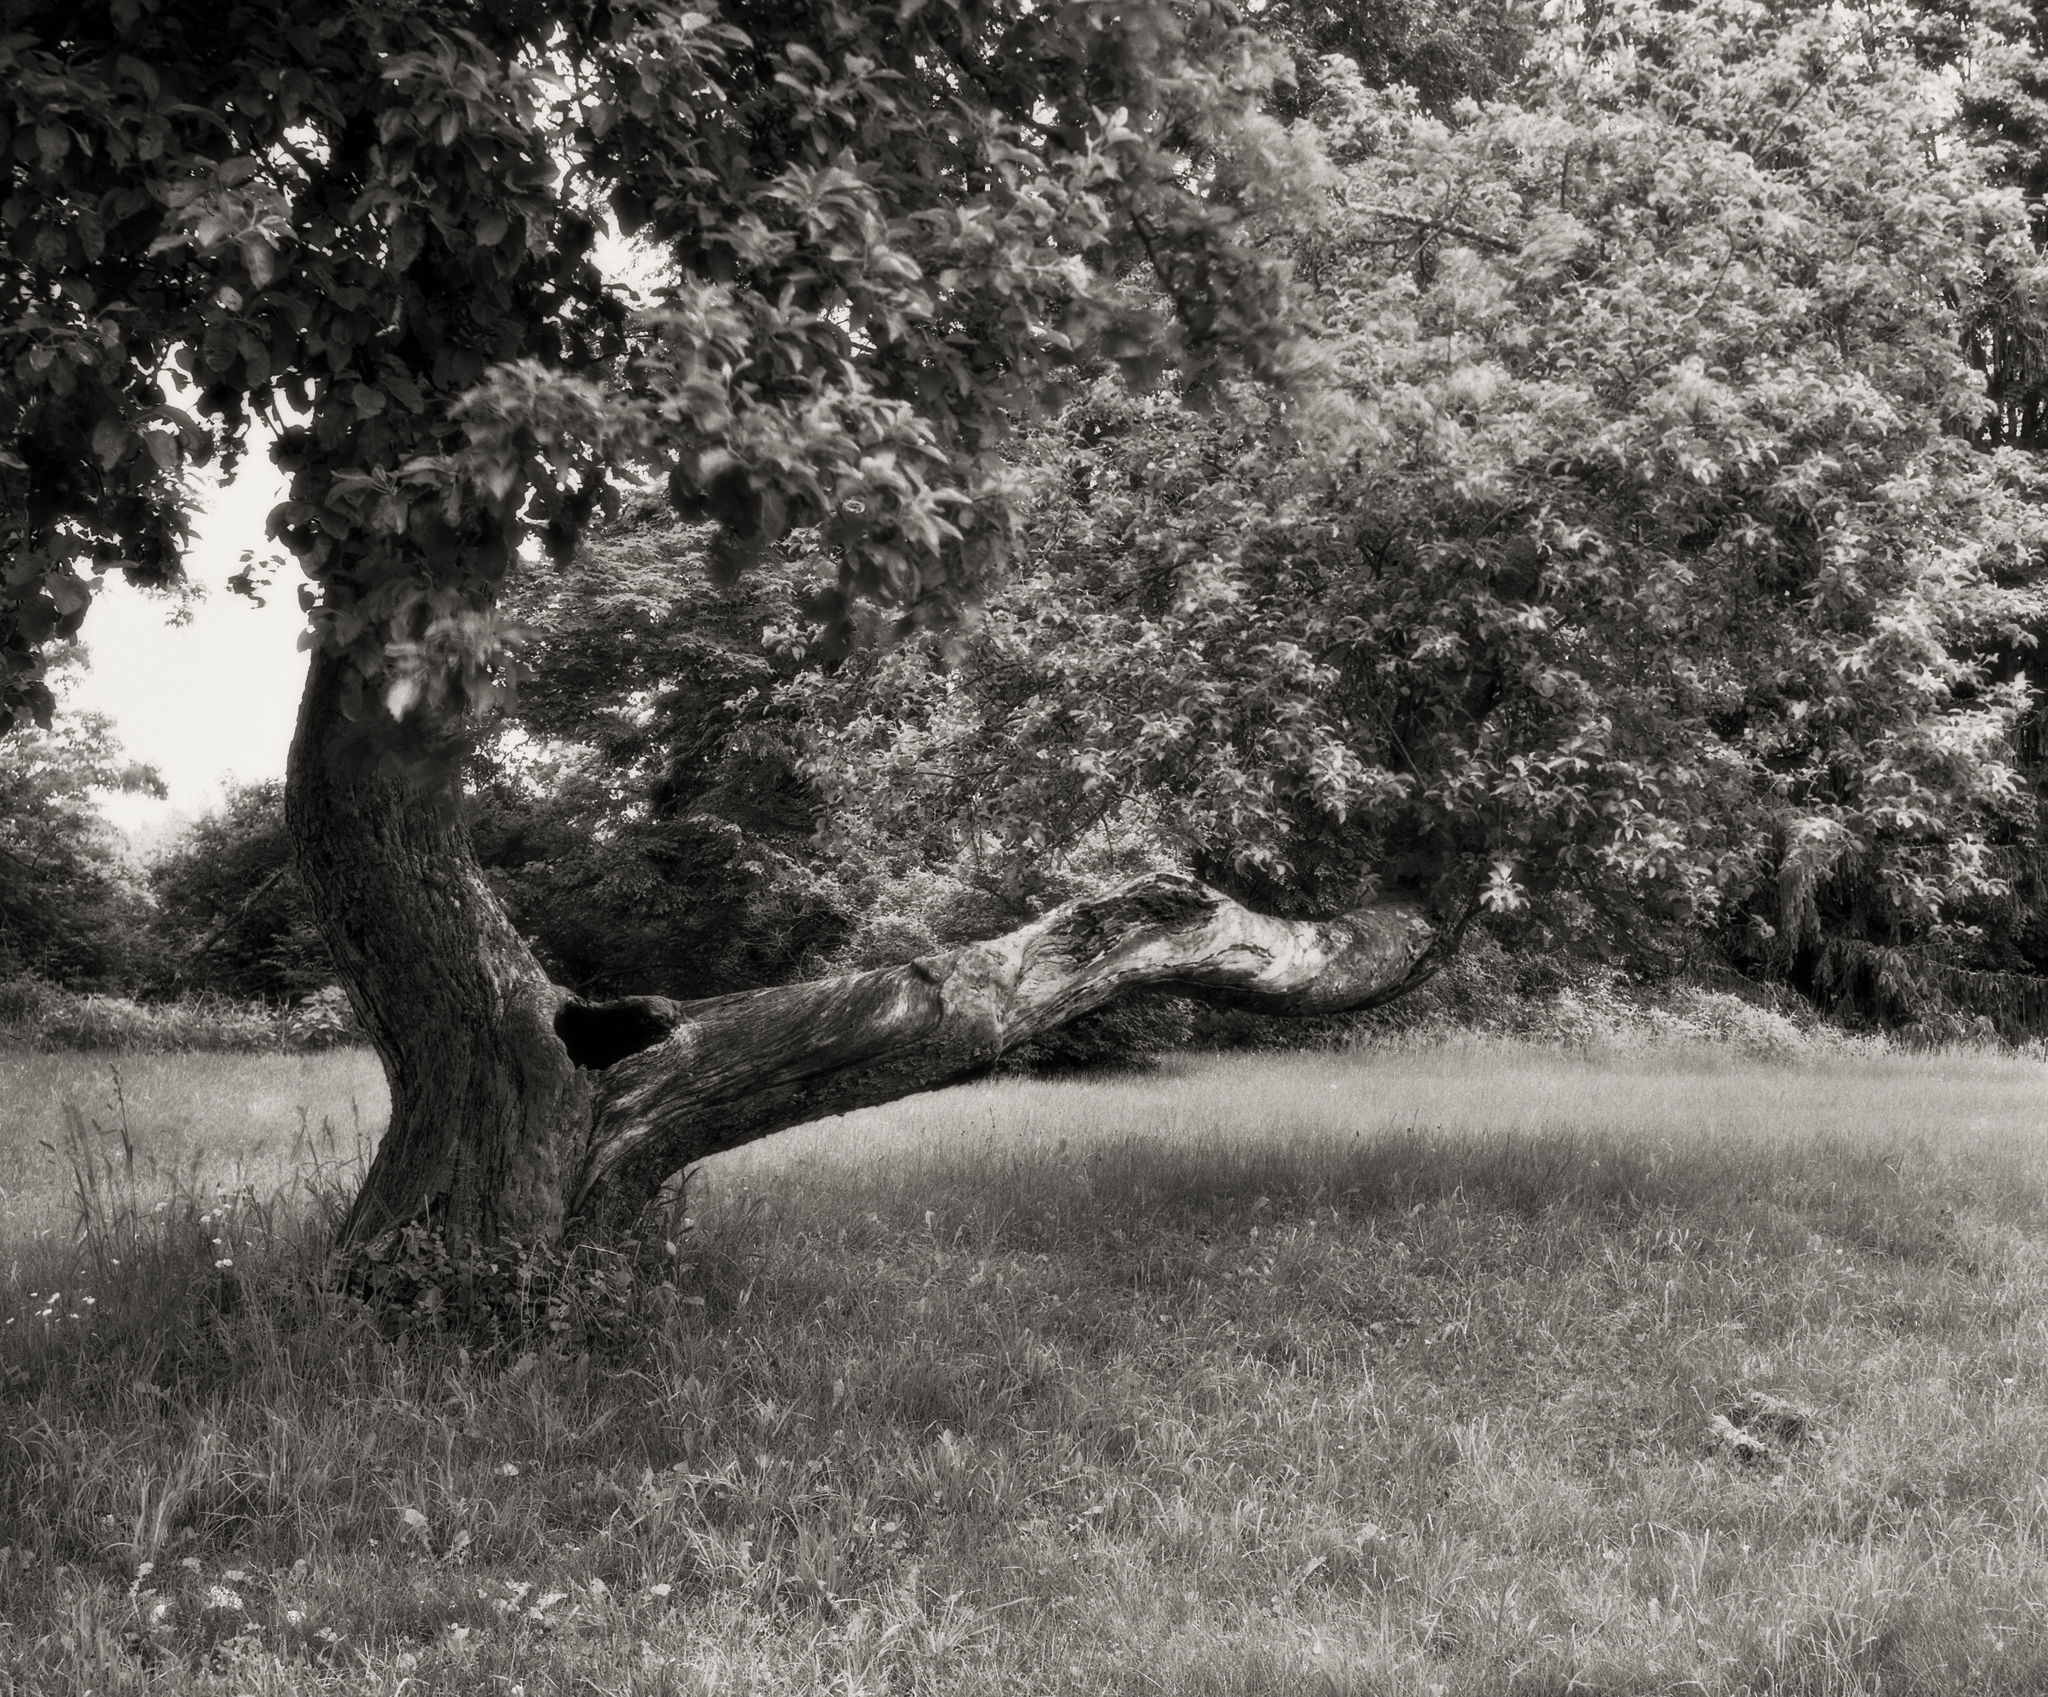 4x5_for_365_project_0154_Wallpack_Center_tree.jpg